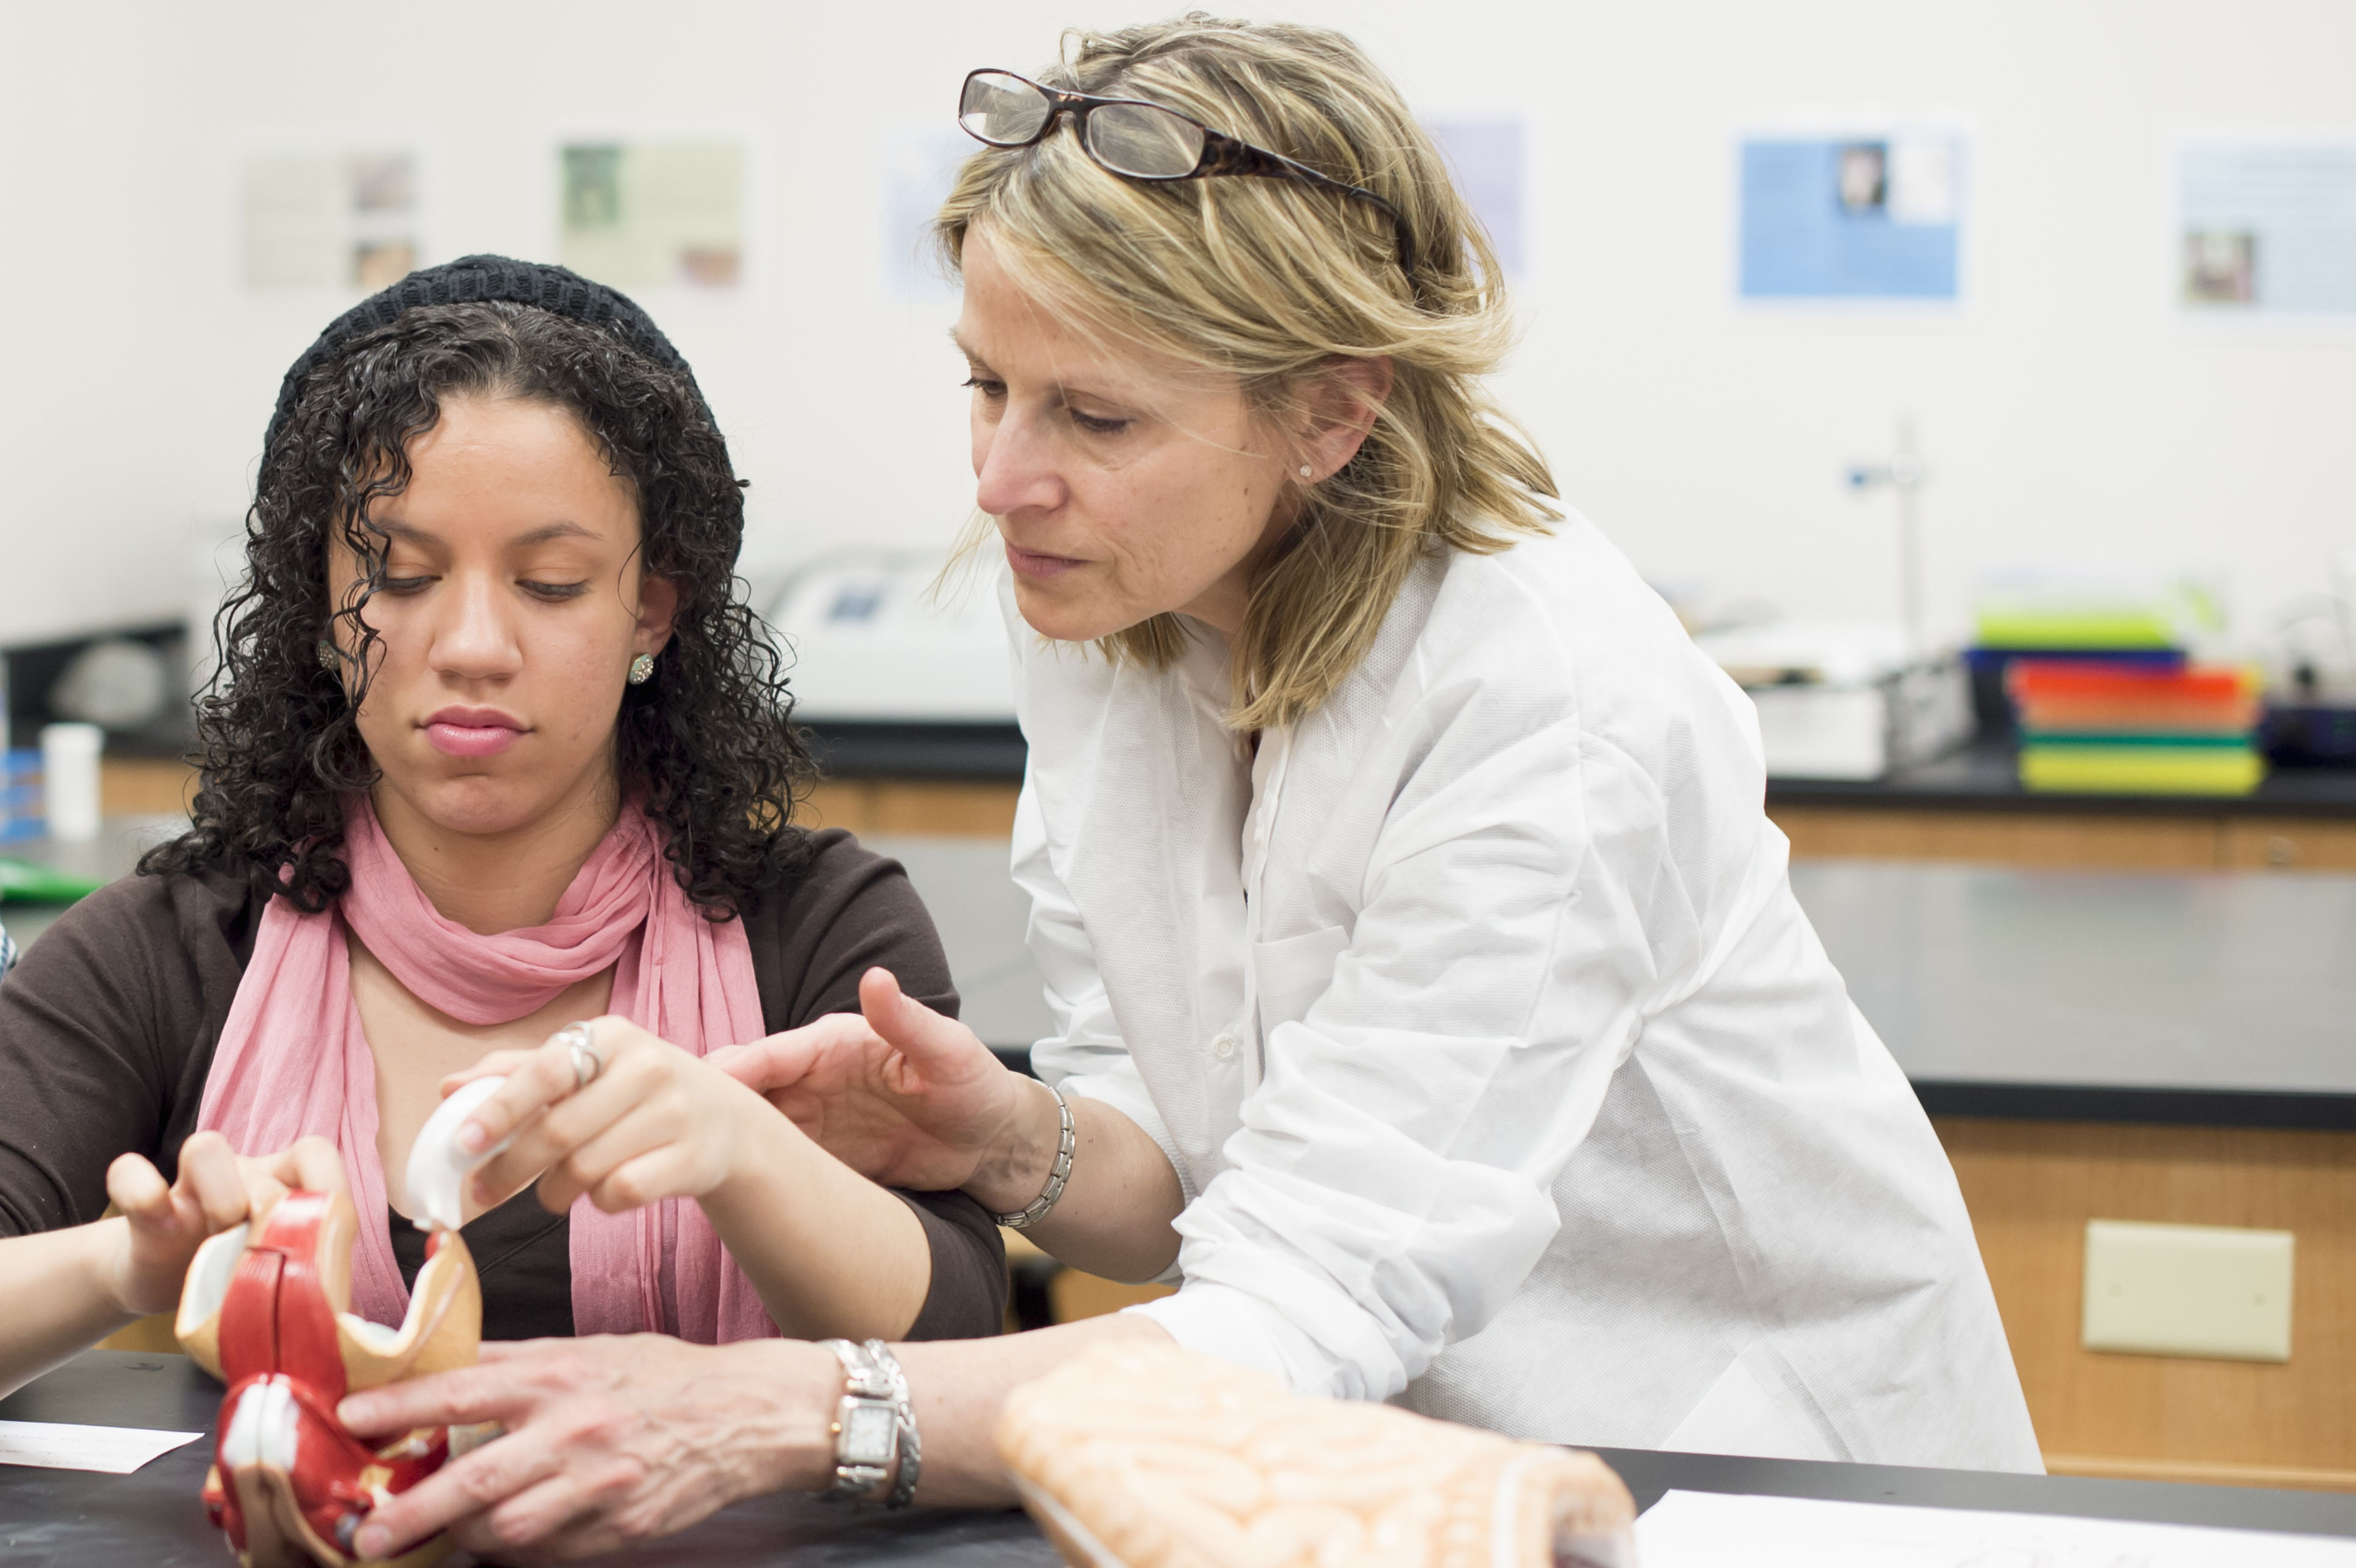 6 questions to ask your premed adviser medical school admissions 6 questions to ask your premed adviser medical school admissions doctor us news